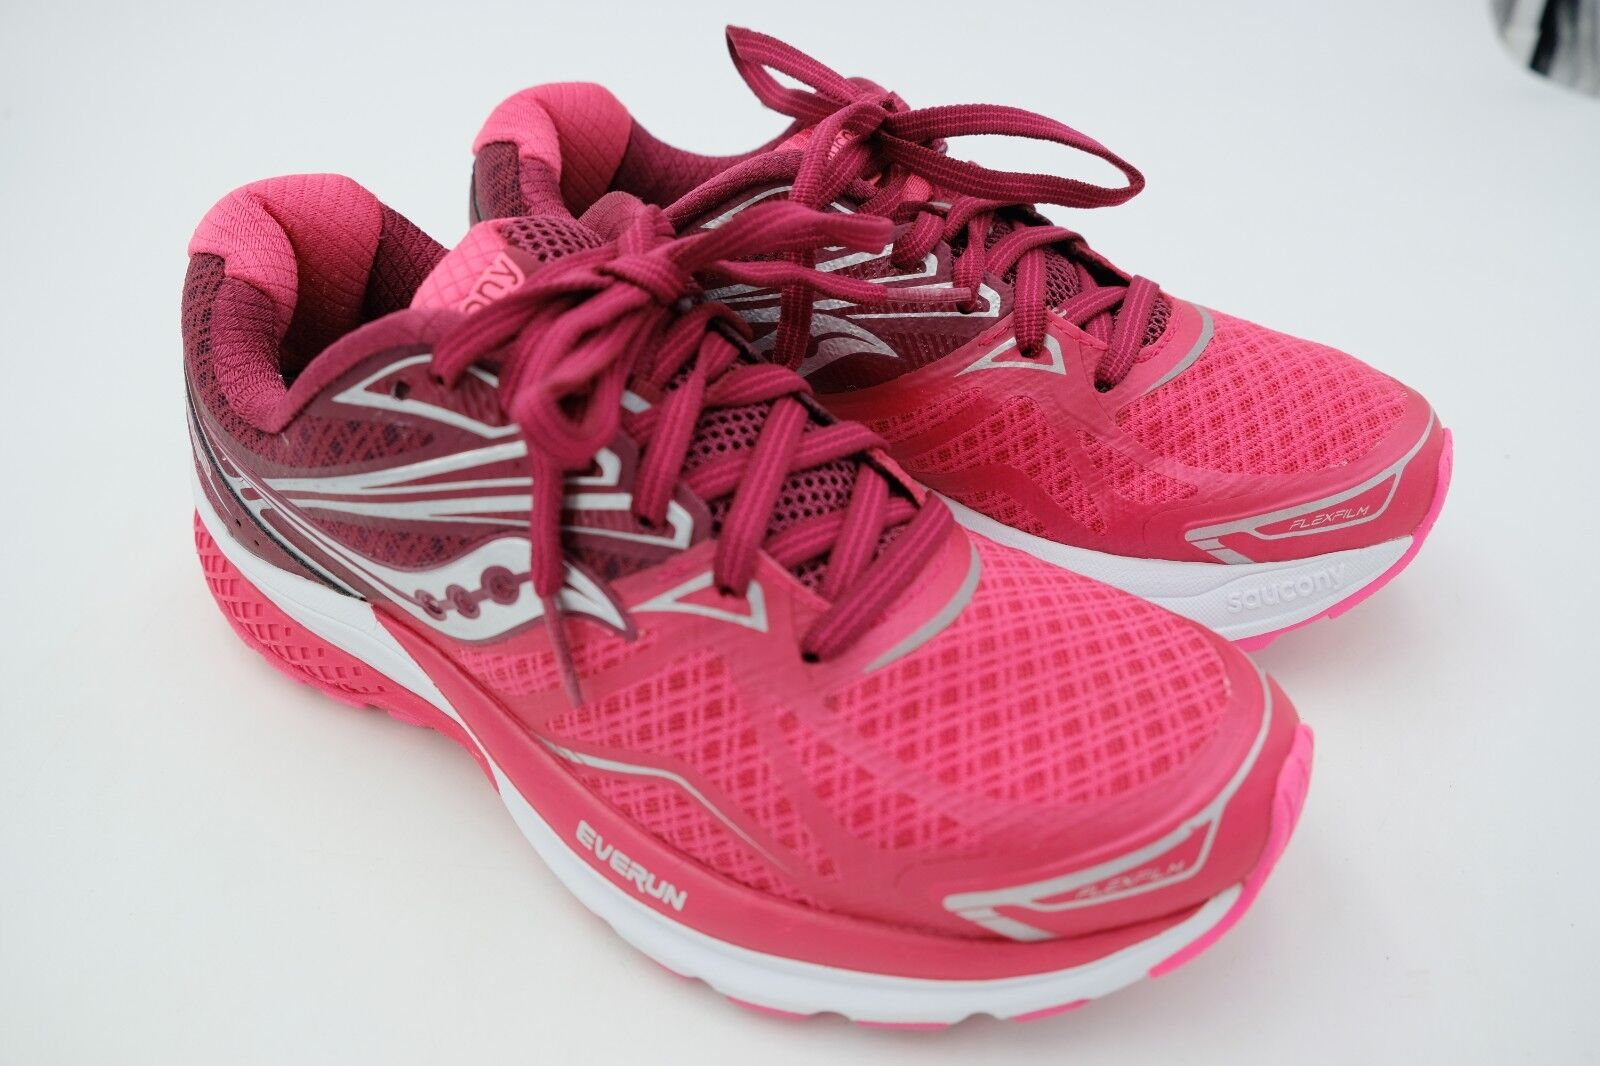 Saucony Ride 9 9 9 Running shoes - Womens Pink Berry Size 7 Used 56ddea